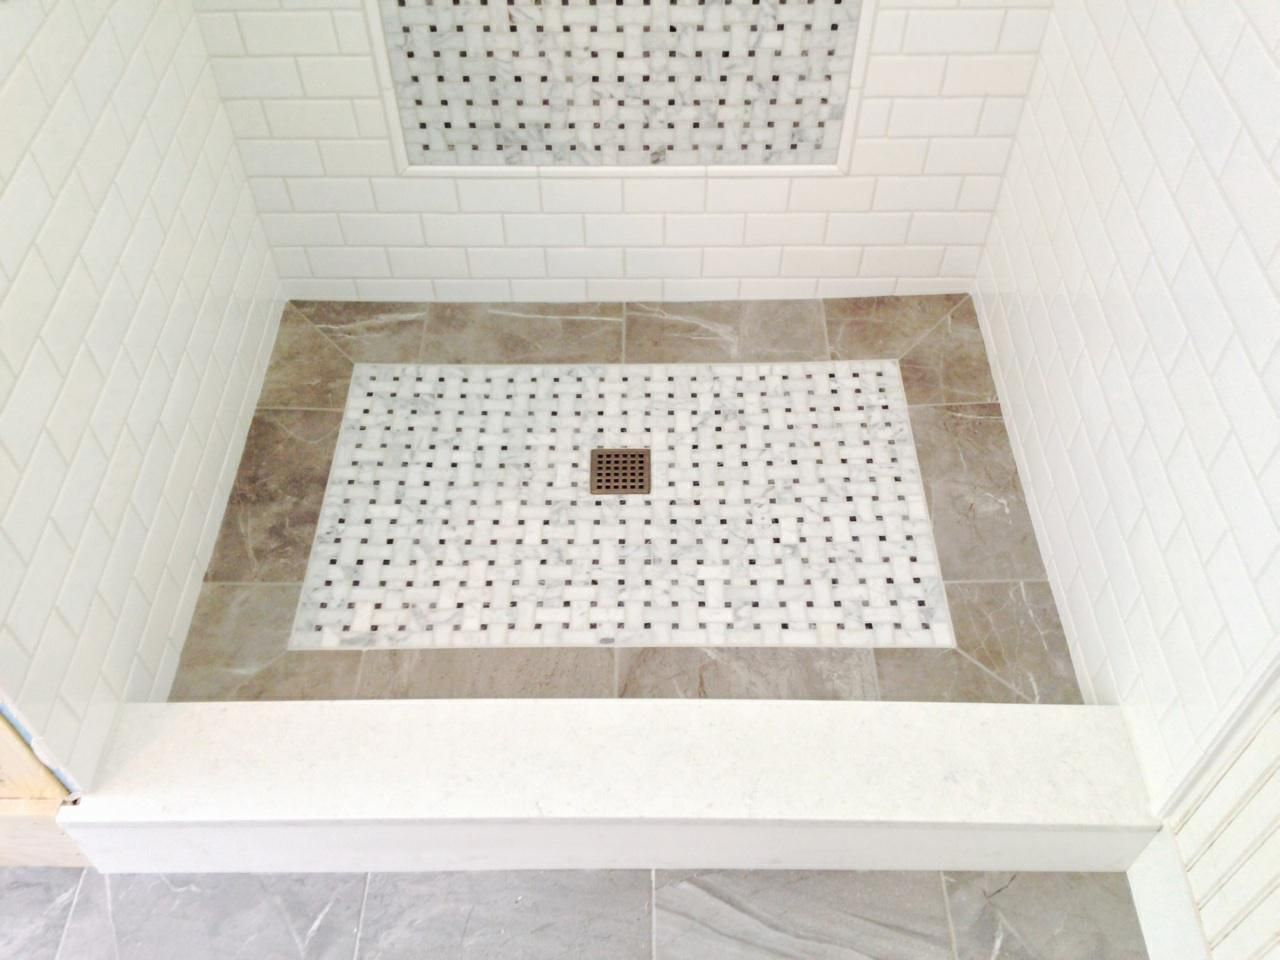 Custom shower floor installed by valley floors basketweave marble custom shower floor installed by valley floors basketweave marble is surrounded by a porcelain tile dailygadgetfo Choice Image